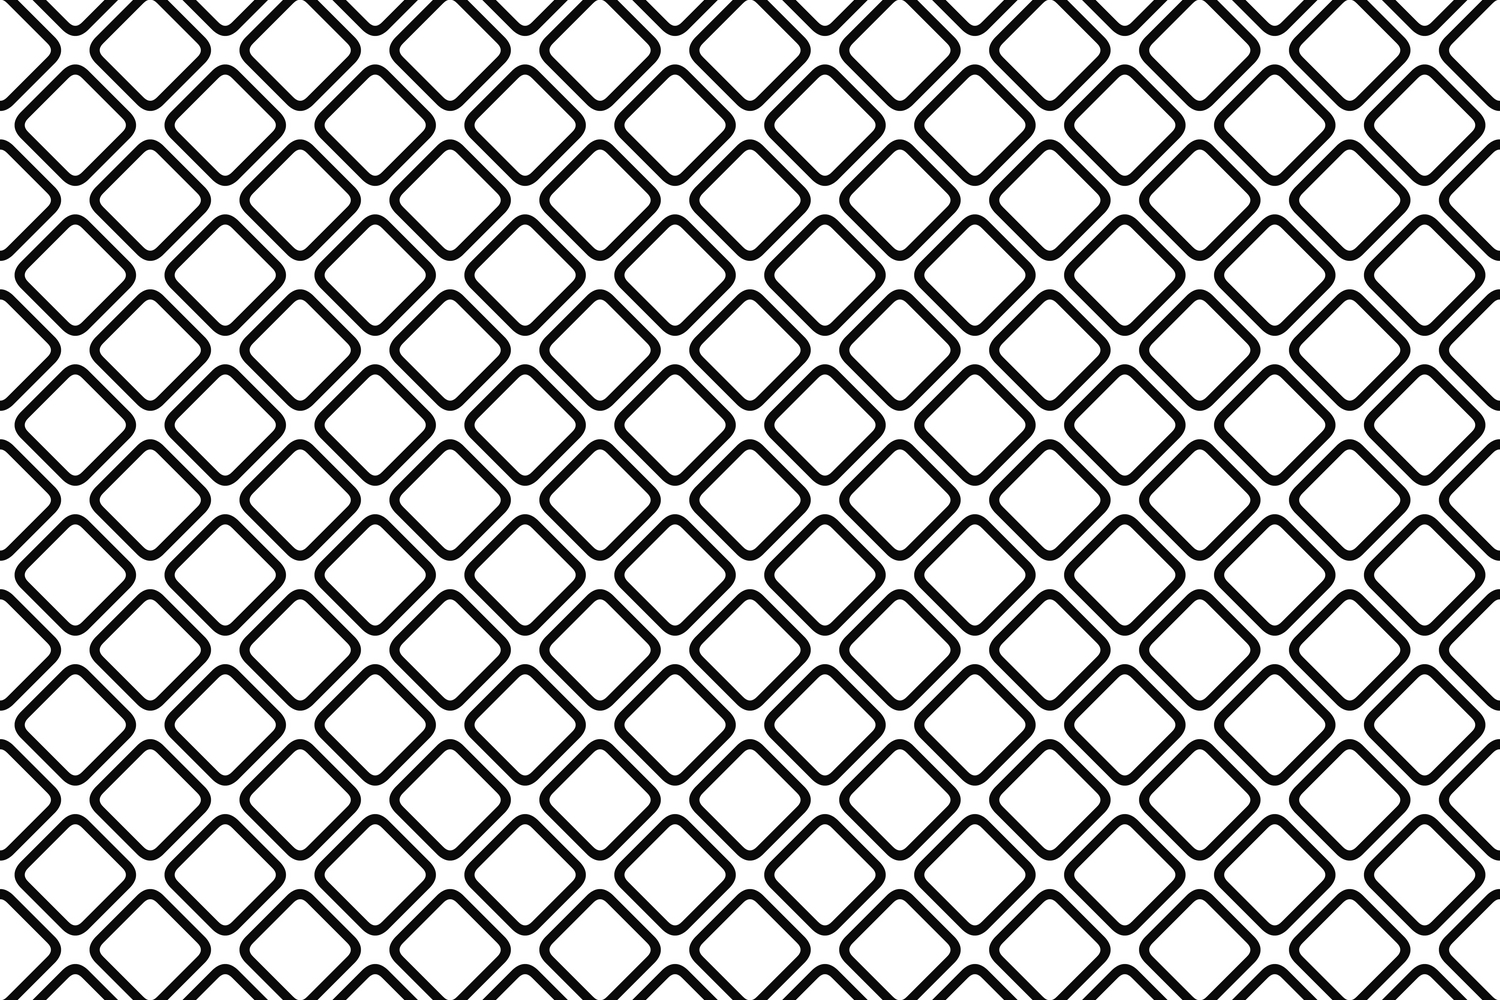 75 Monochrome Geometrical Patterns AI, EPS, JPG 5000x5000 example image 9